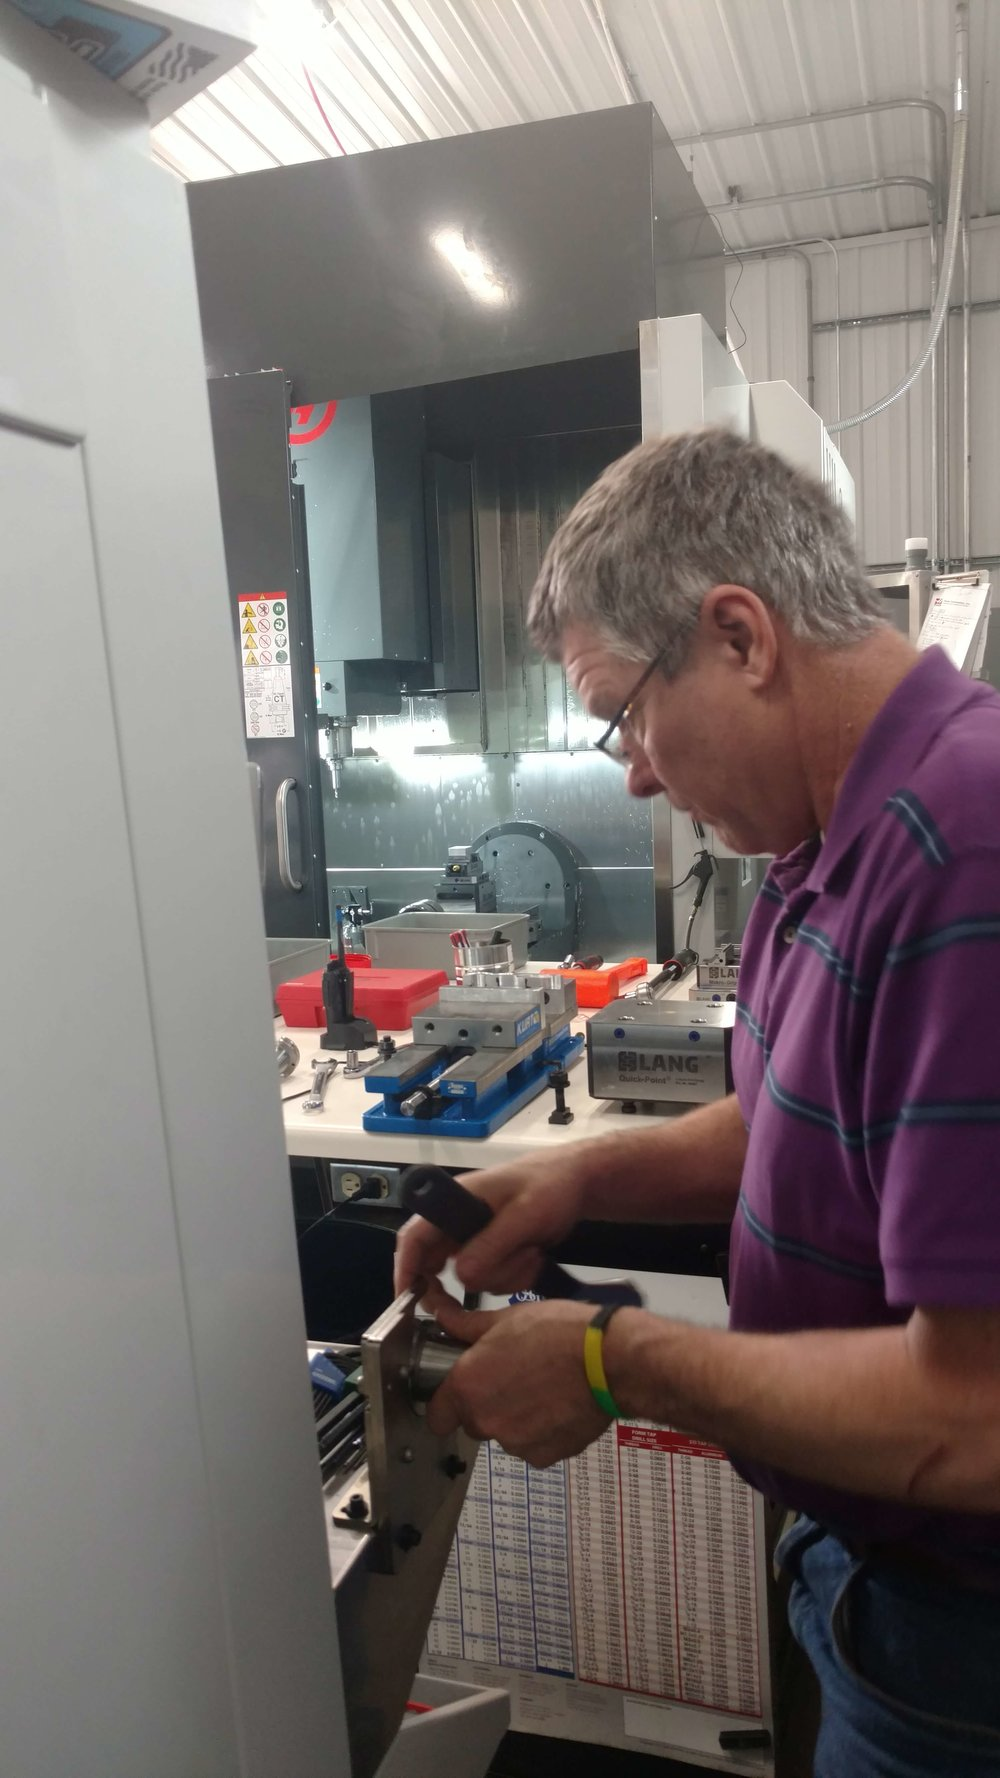 Behind owner, Ken Hastreiter, the other 19,000 pound 5 axis mill can be seen. Below, is a picture of the inside.